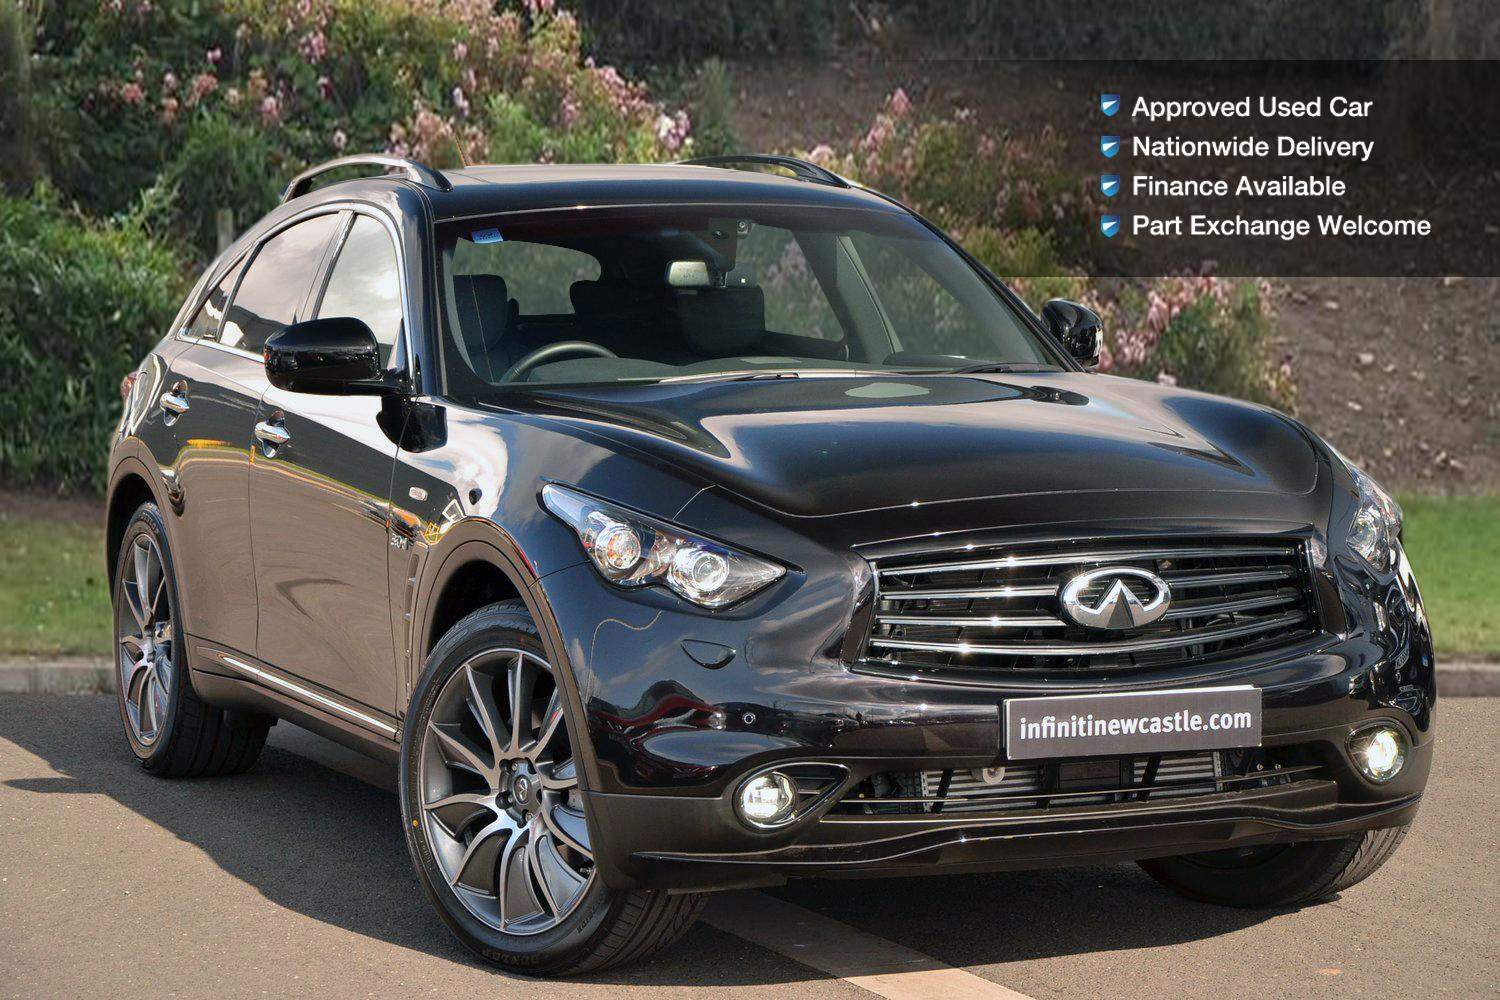 used infiniti qx70 3 0d ultimate 5dr auto diesel estate for sale newcastle infiniti. Black Bedroom Furniture Sets. Home Design Ideas